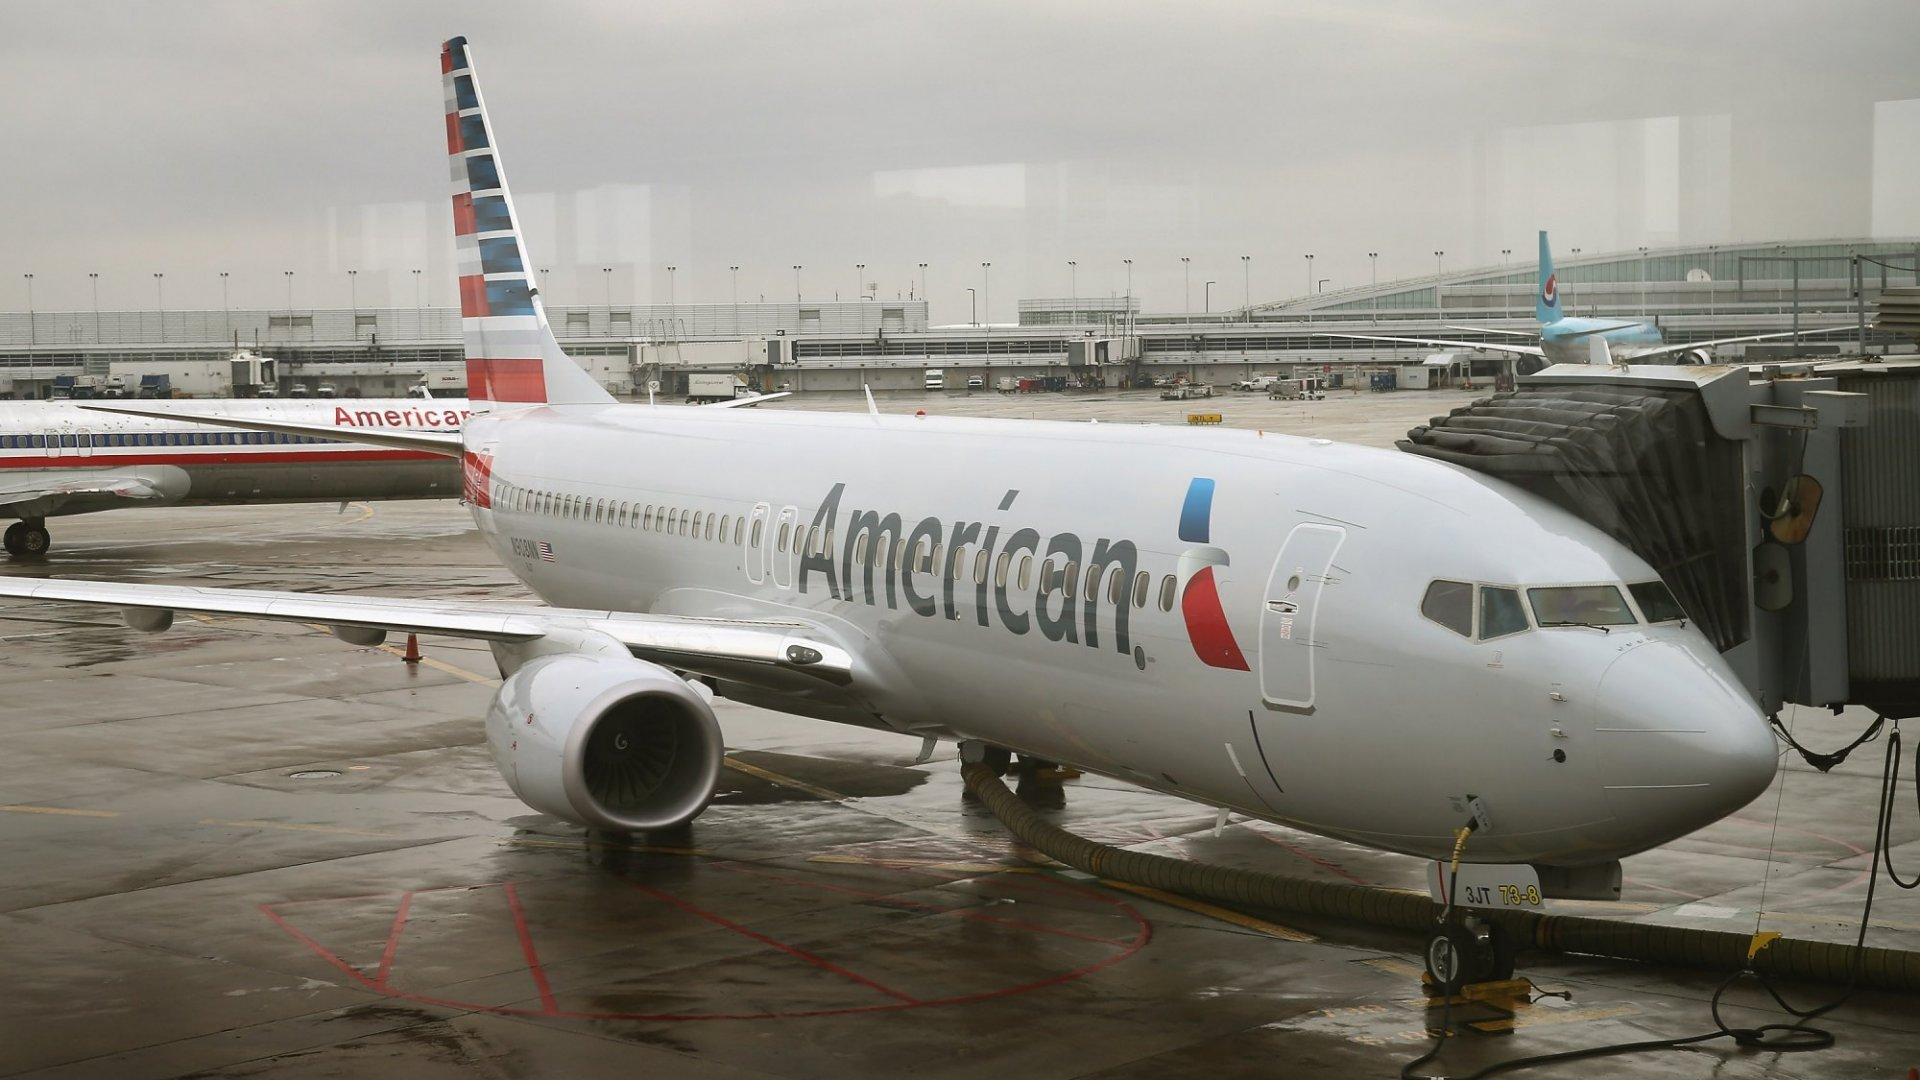 American Airlines Pulls an Unbelievable Social Media Flub